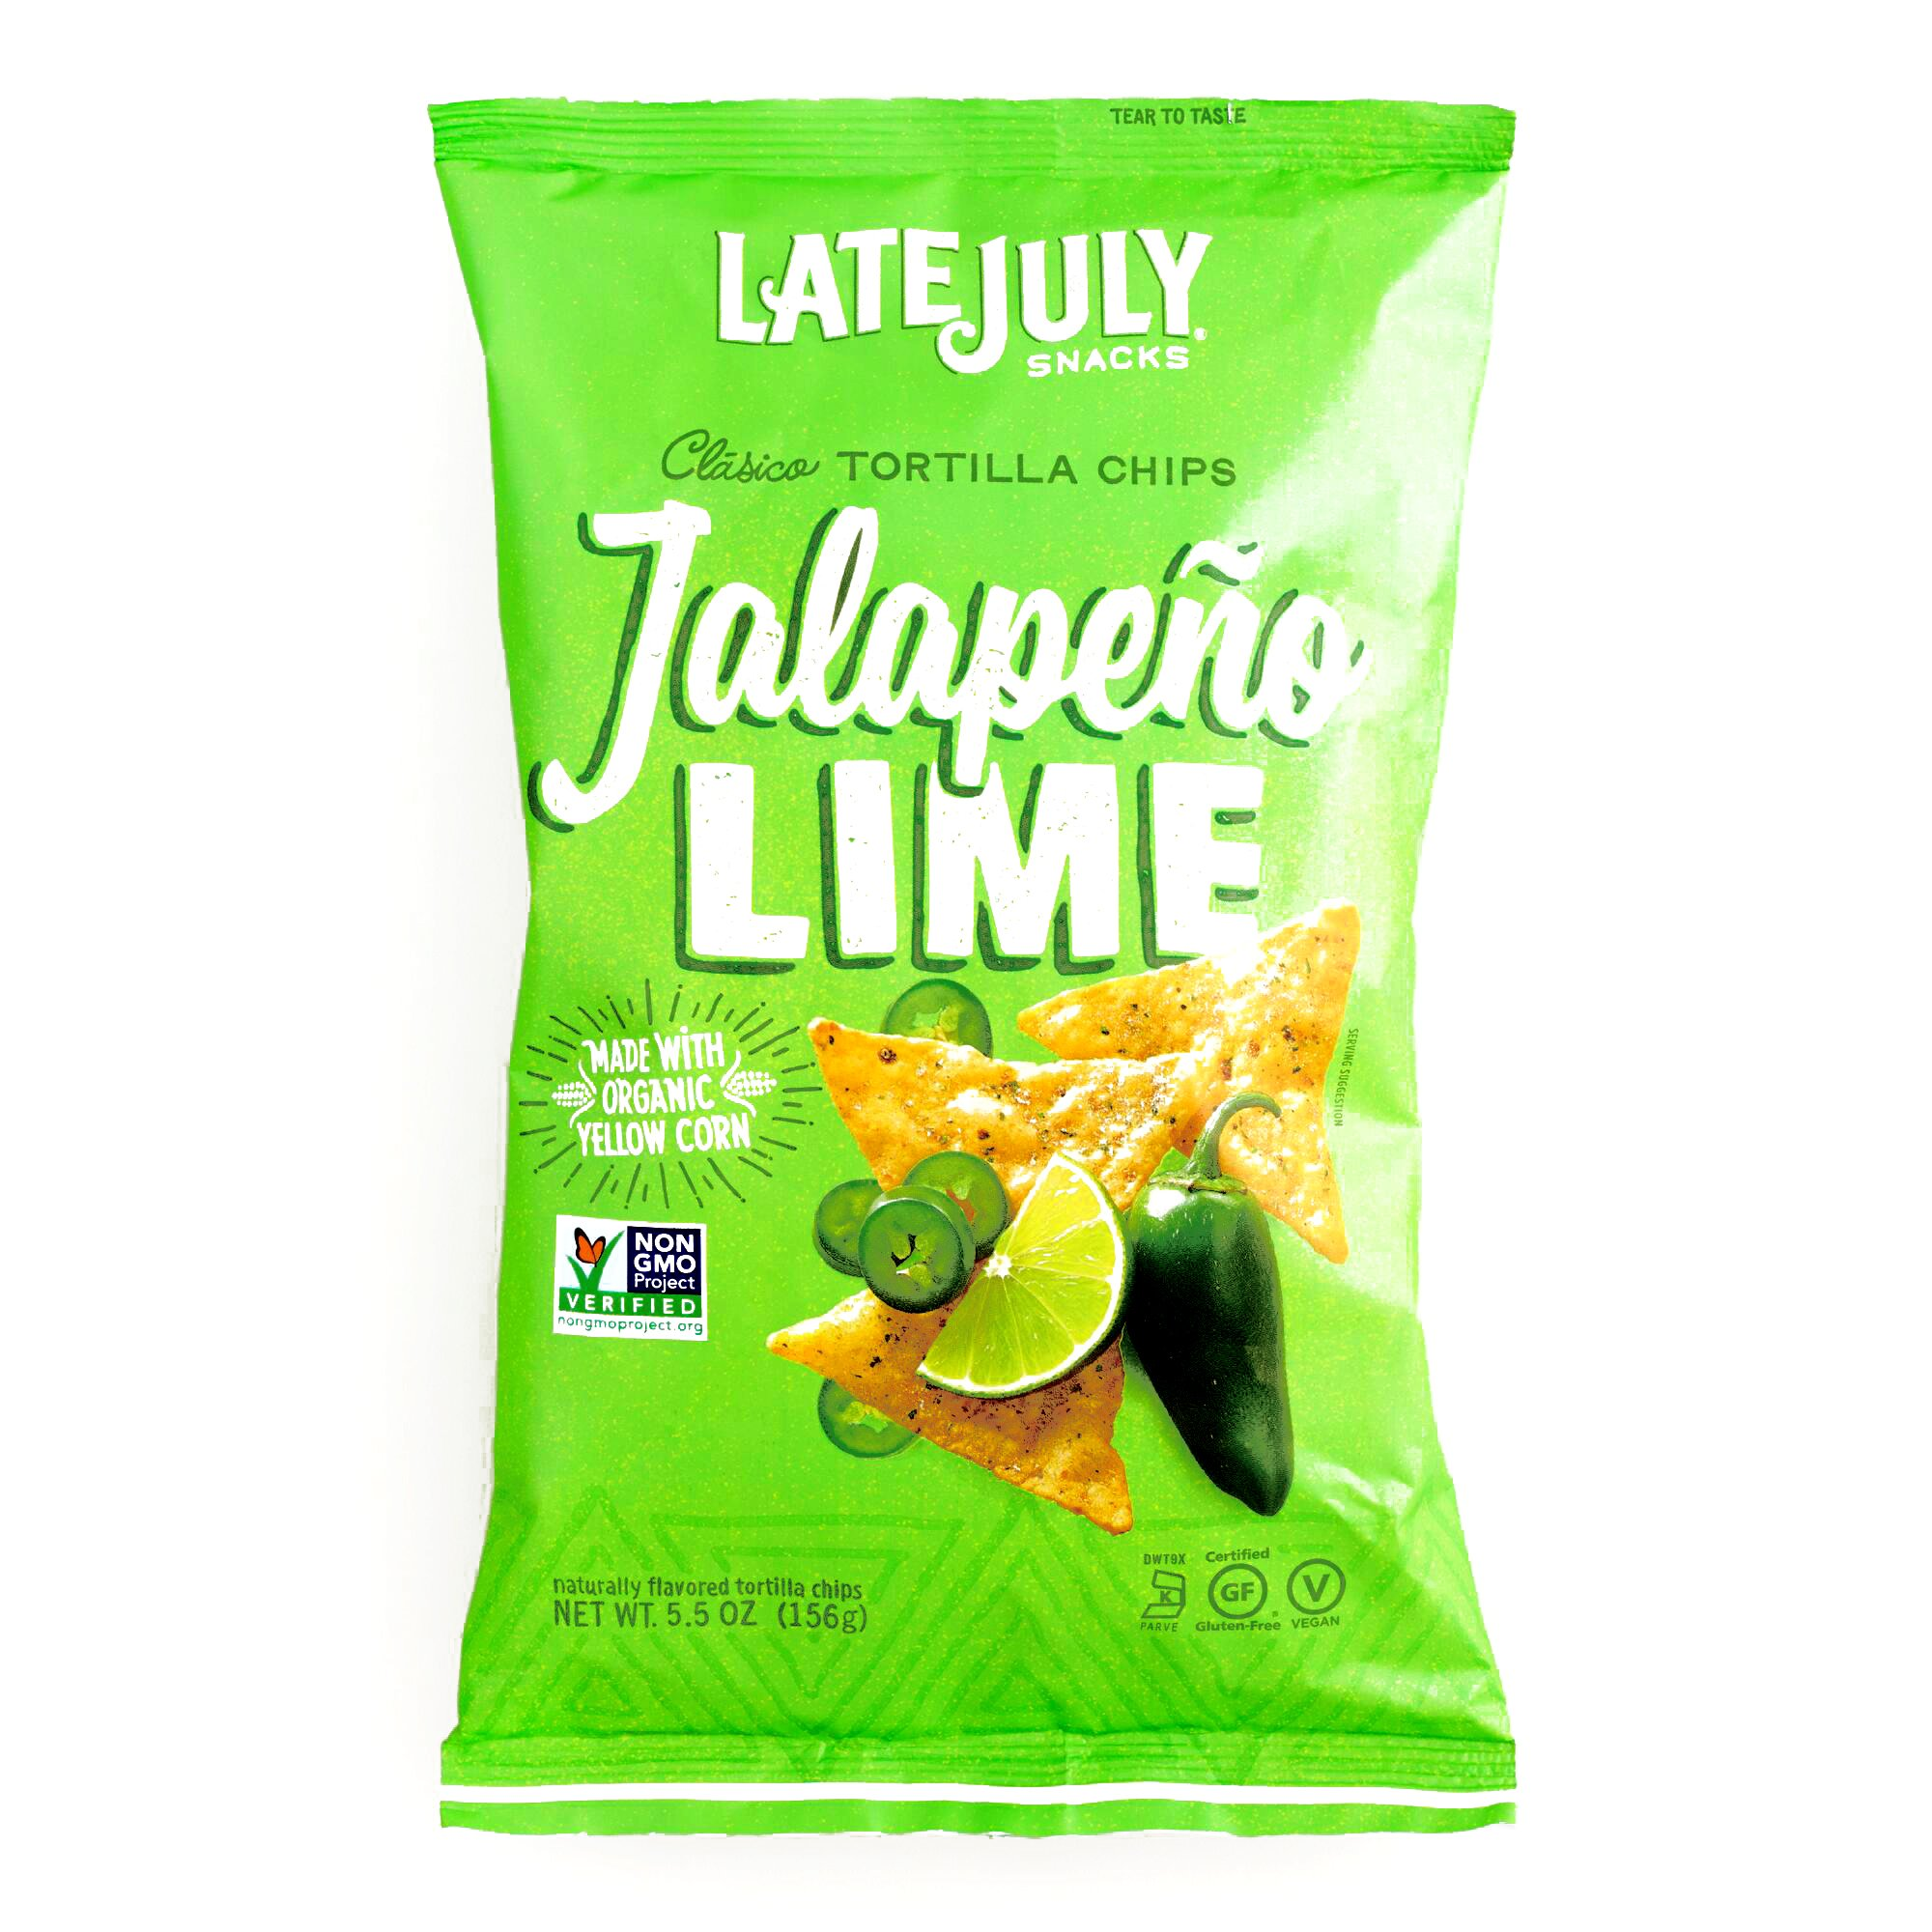 Late July Jalapeno Lime Tortilla Chips 5.5 oz each (1 Item Per Order)